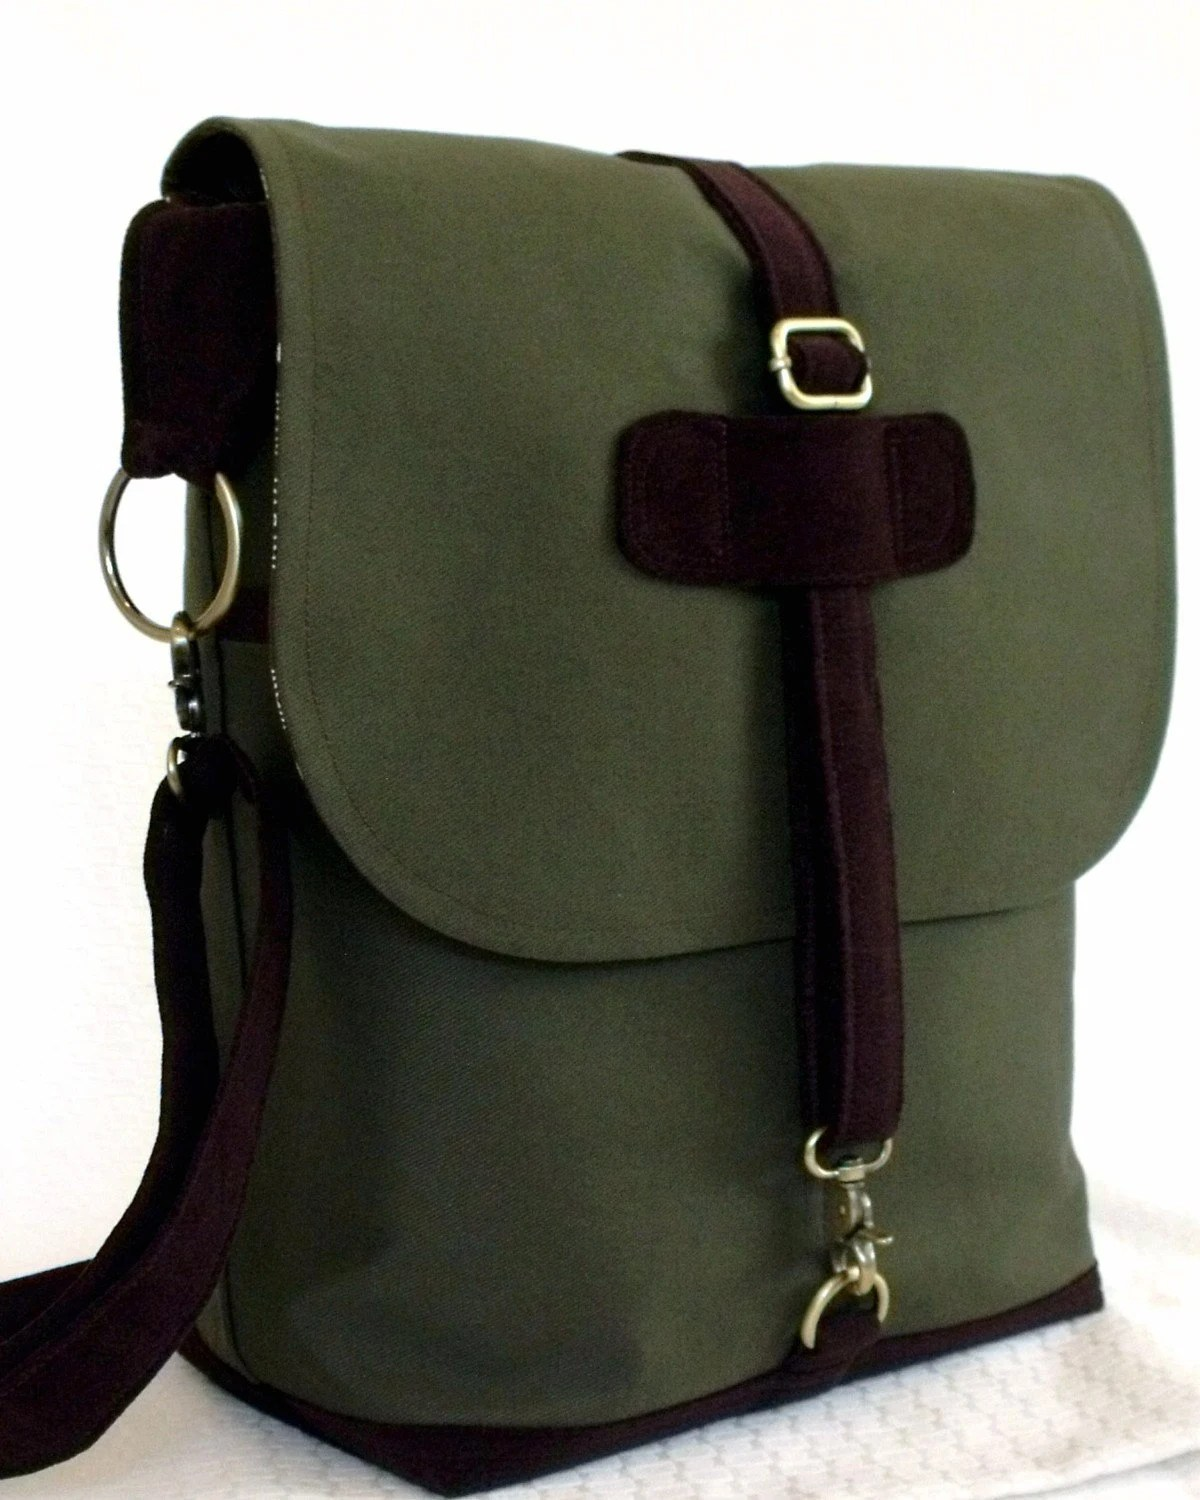 London Convertible Messenger in CHOCOLATE OLIVE